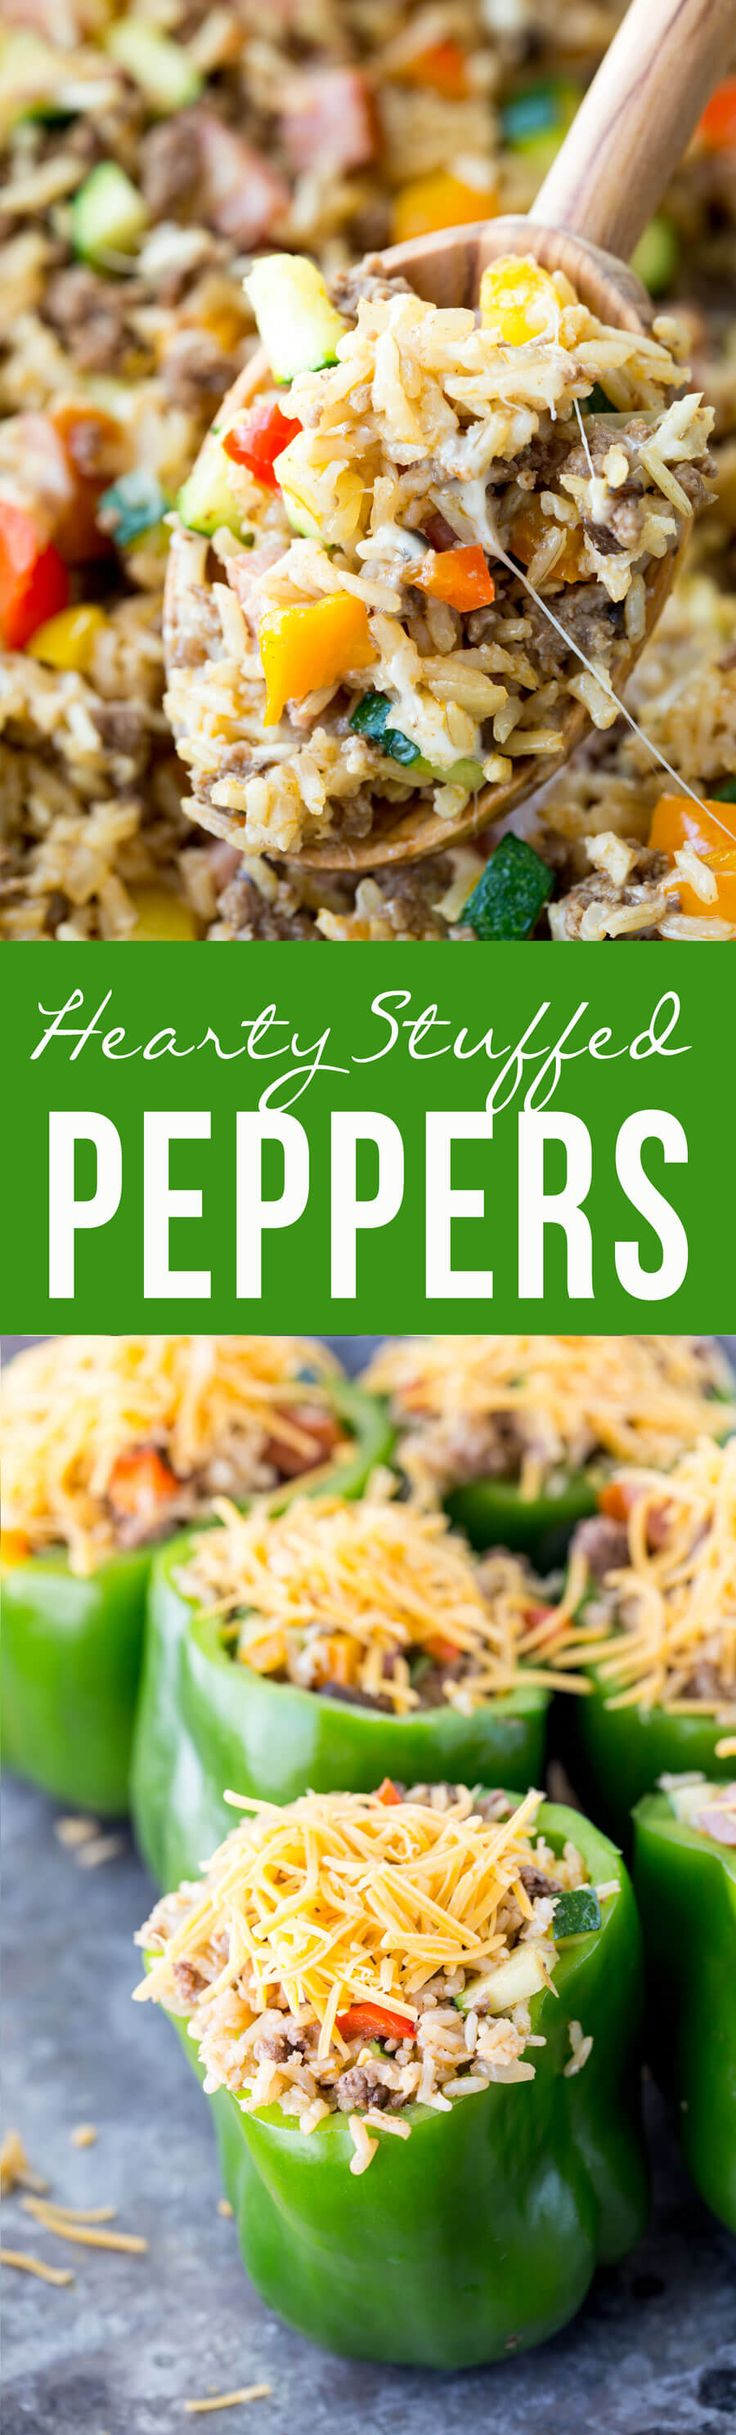 Hearty Stuffed Peppers. [Omit rice.  Maybe add chopped tomatoes to stuffing mixture and maybe a little quinoa? ] (Quick Diet Veggies)